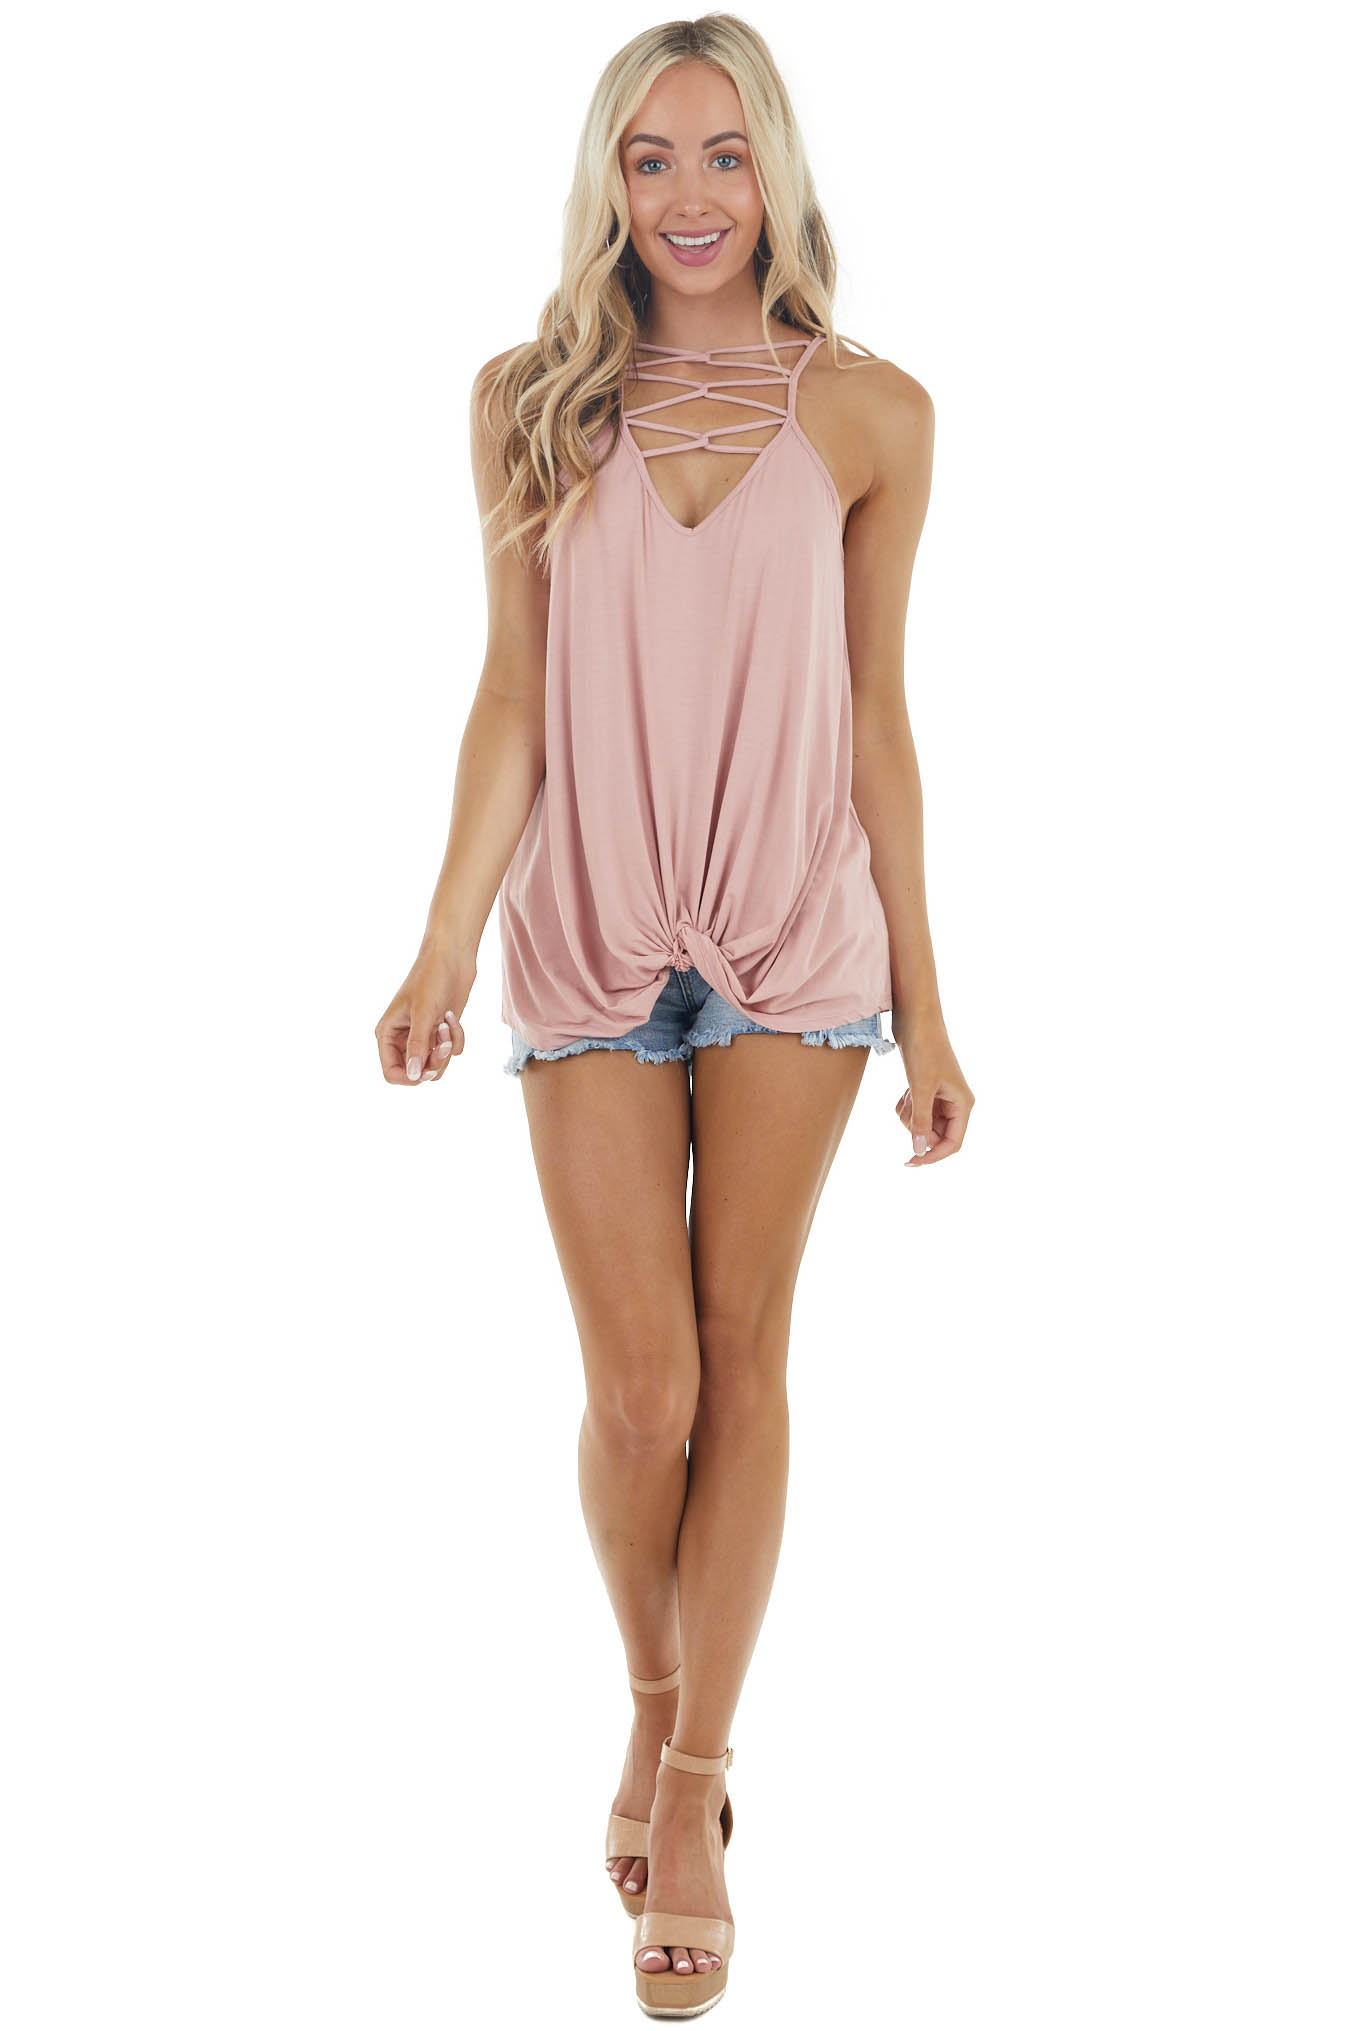 Cherry Blossom Sleeveless Strappy Neck Knit Top with Knot